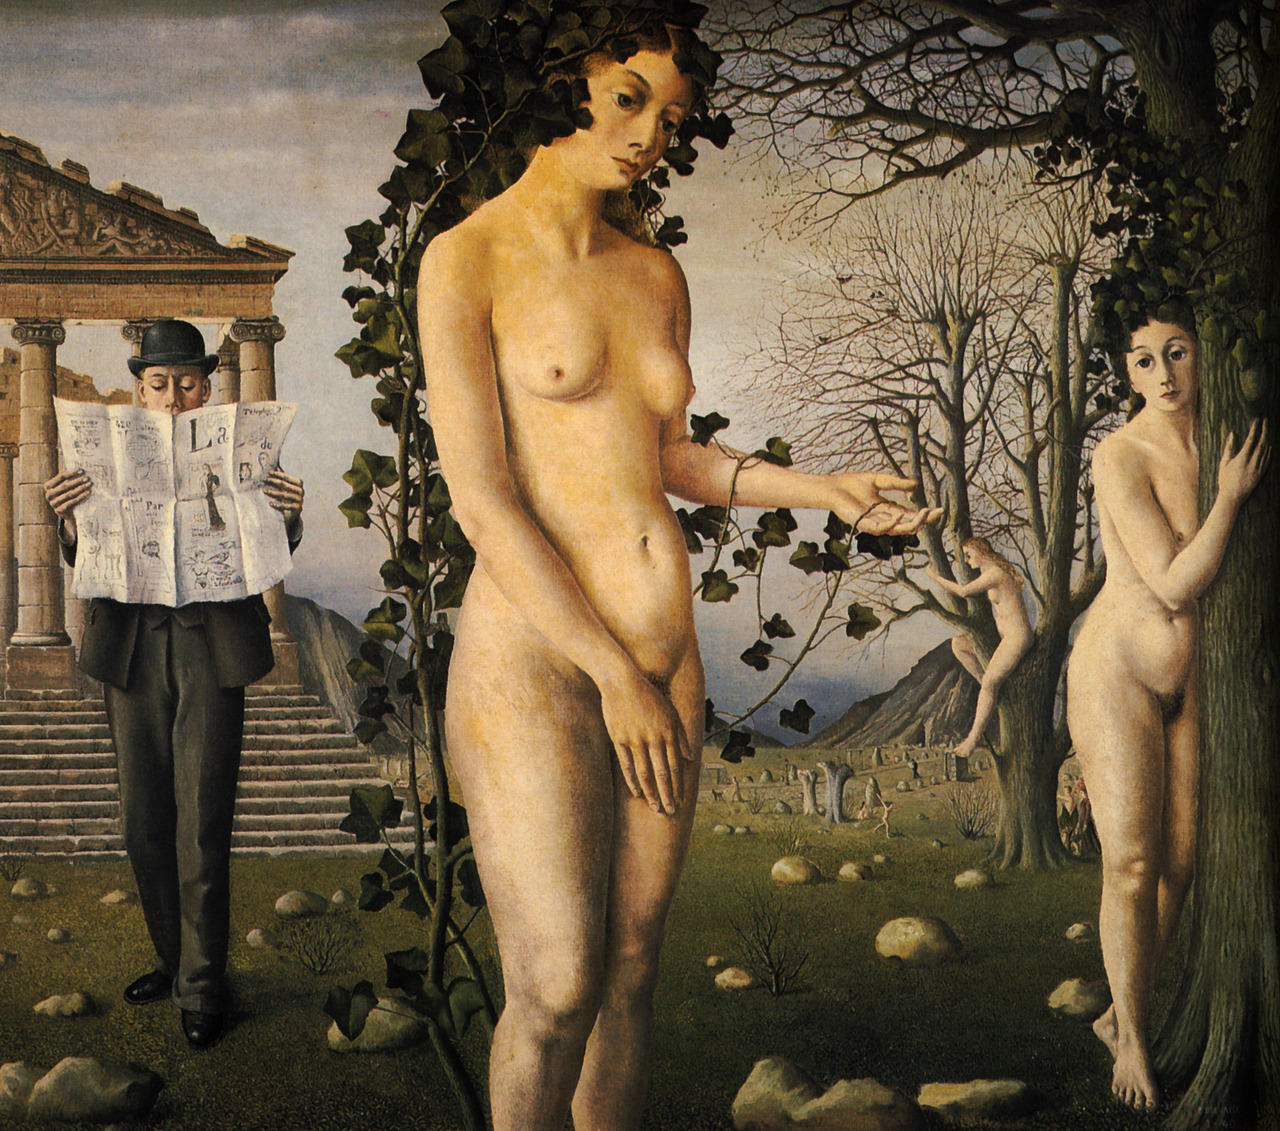 Paul Delvaux, The Man in the Street